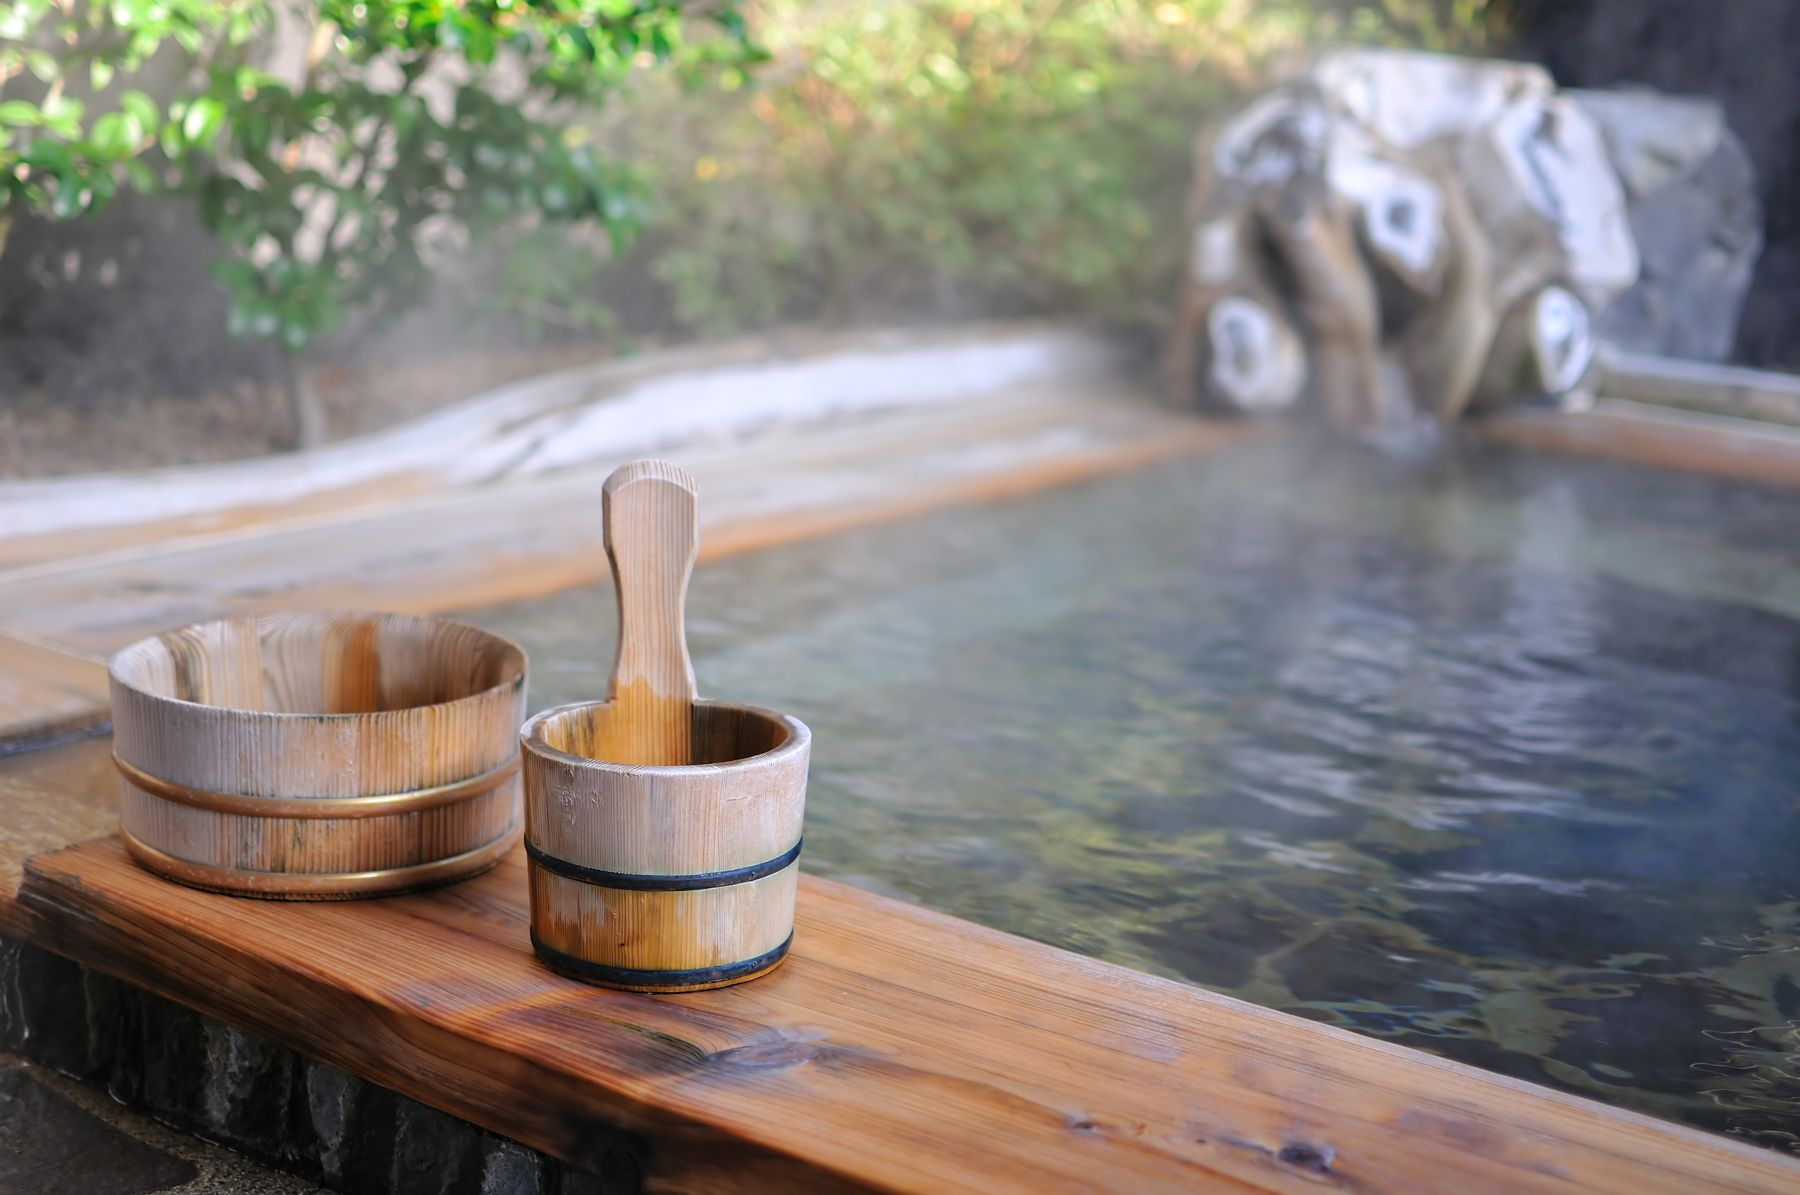 hot water pool and wooden bowls at a ryokan in Japan